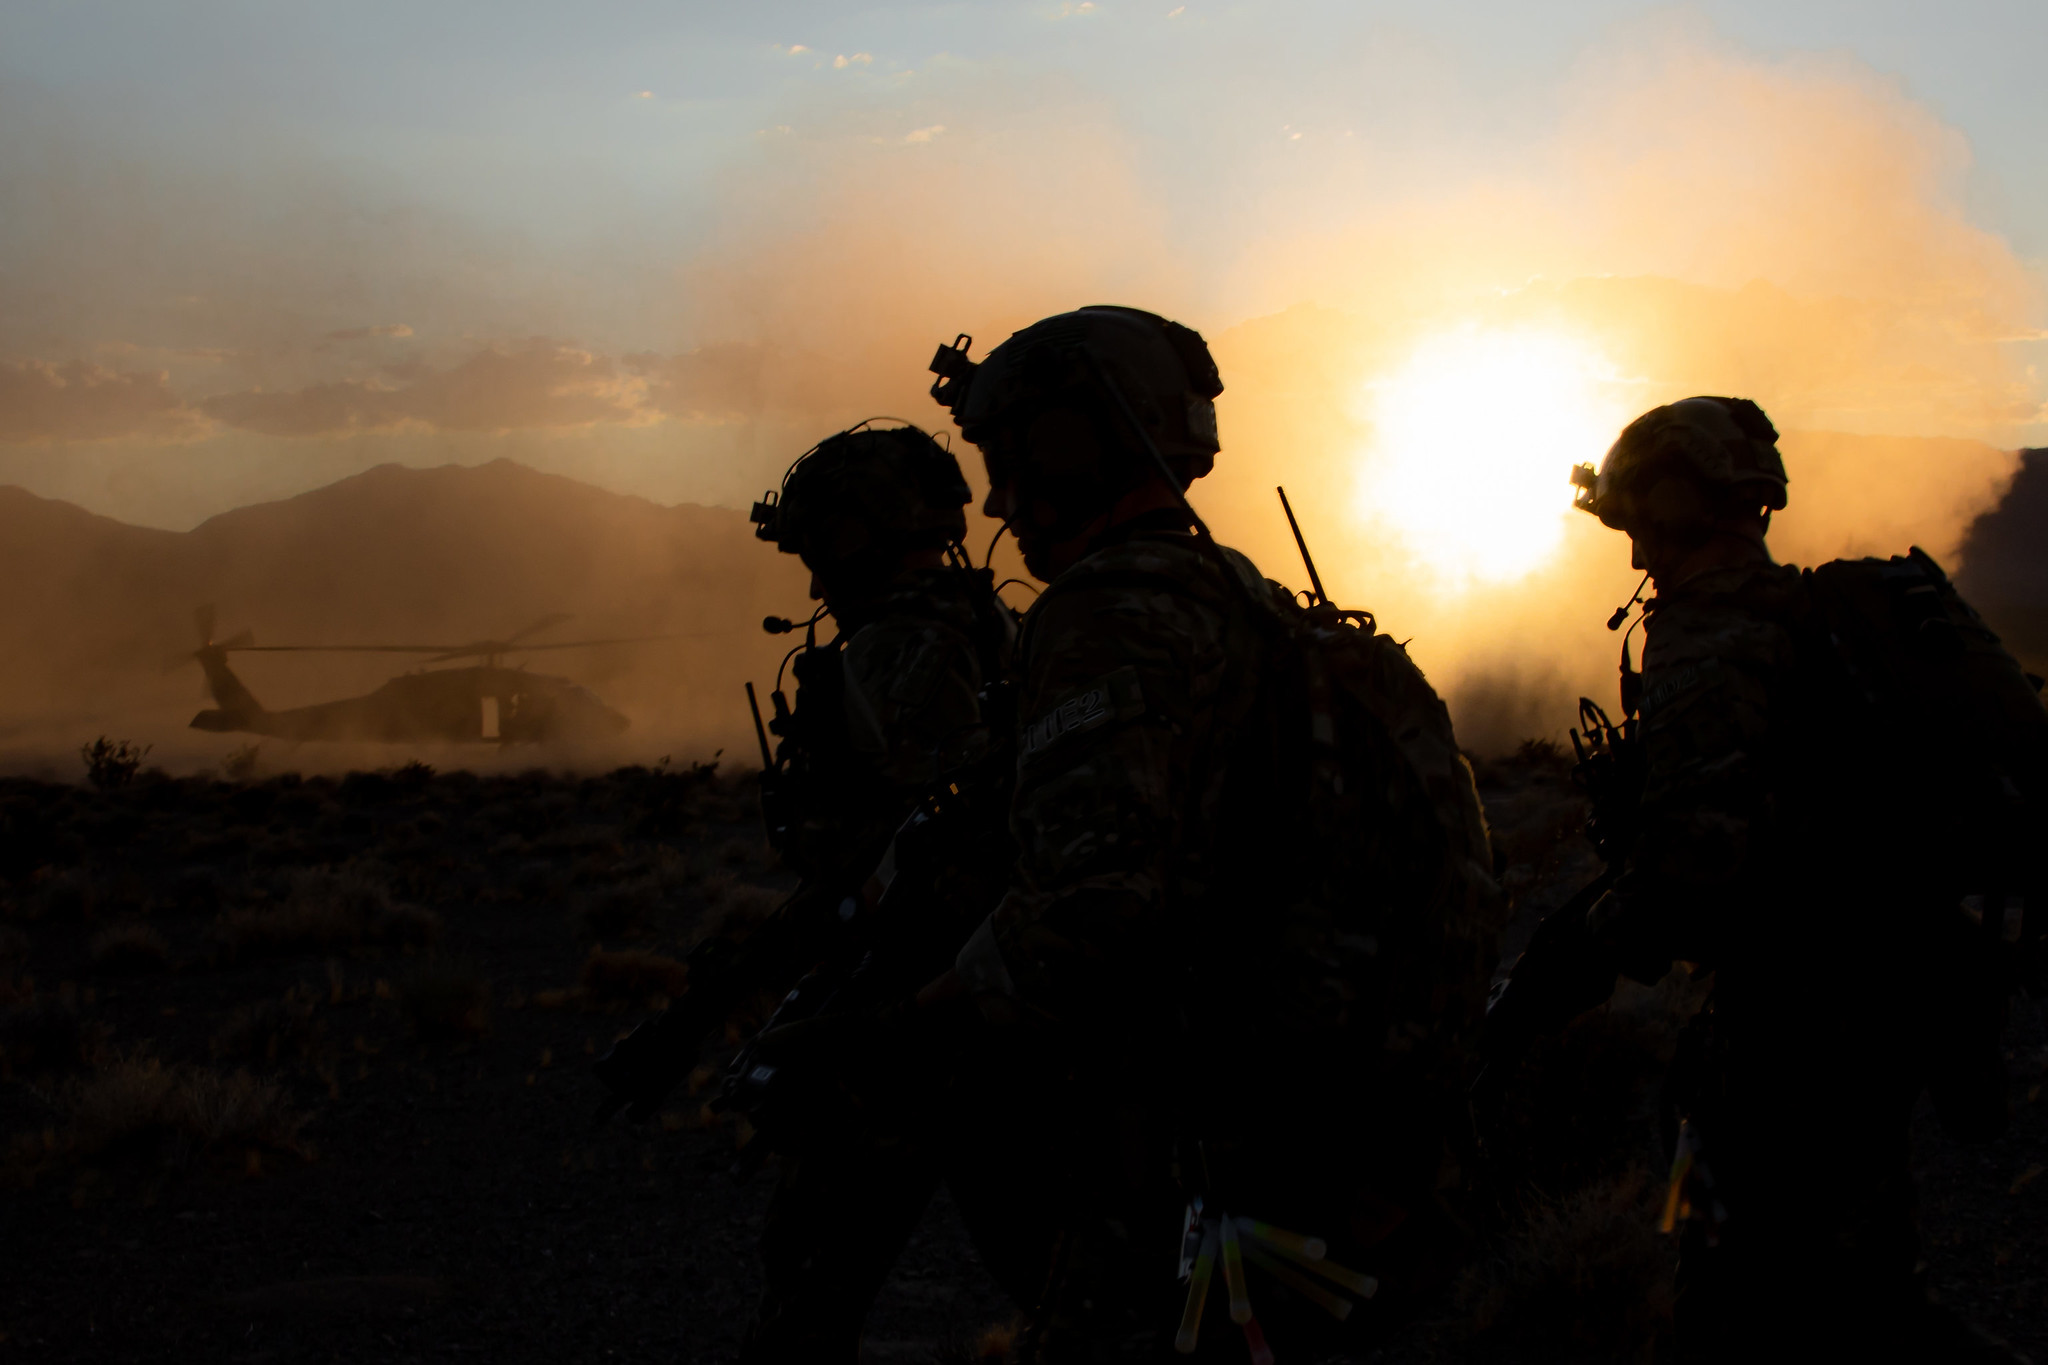 Green Berets assigned to 3rd Special Forces Group (Airborne) move to load onto a UH-60 Blackhawk helicopter for extraction during a training event near Nellis Air Force Base, Nev. Aug. 27, 2019. U.S. Special Forces and U.S. Air Force Joint Terminal Attack Controllers conducted a raid and utilized multiple weapon systems ranging from smalls arms weapons to A-10 Thunderbolt ll aircraft. (U.S. Army photo by Sgt. Steven Lewis)